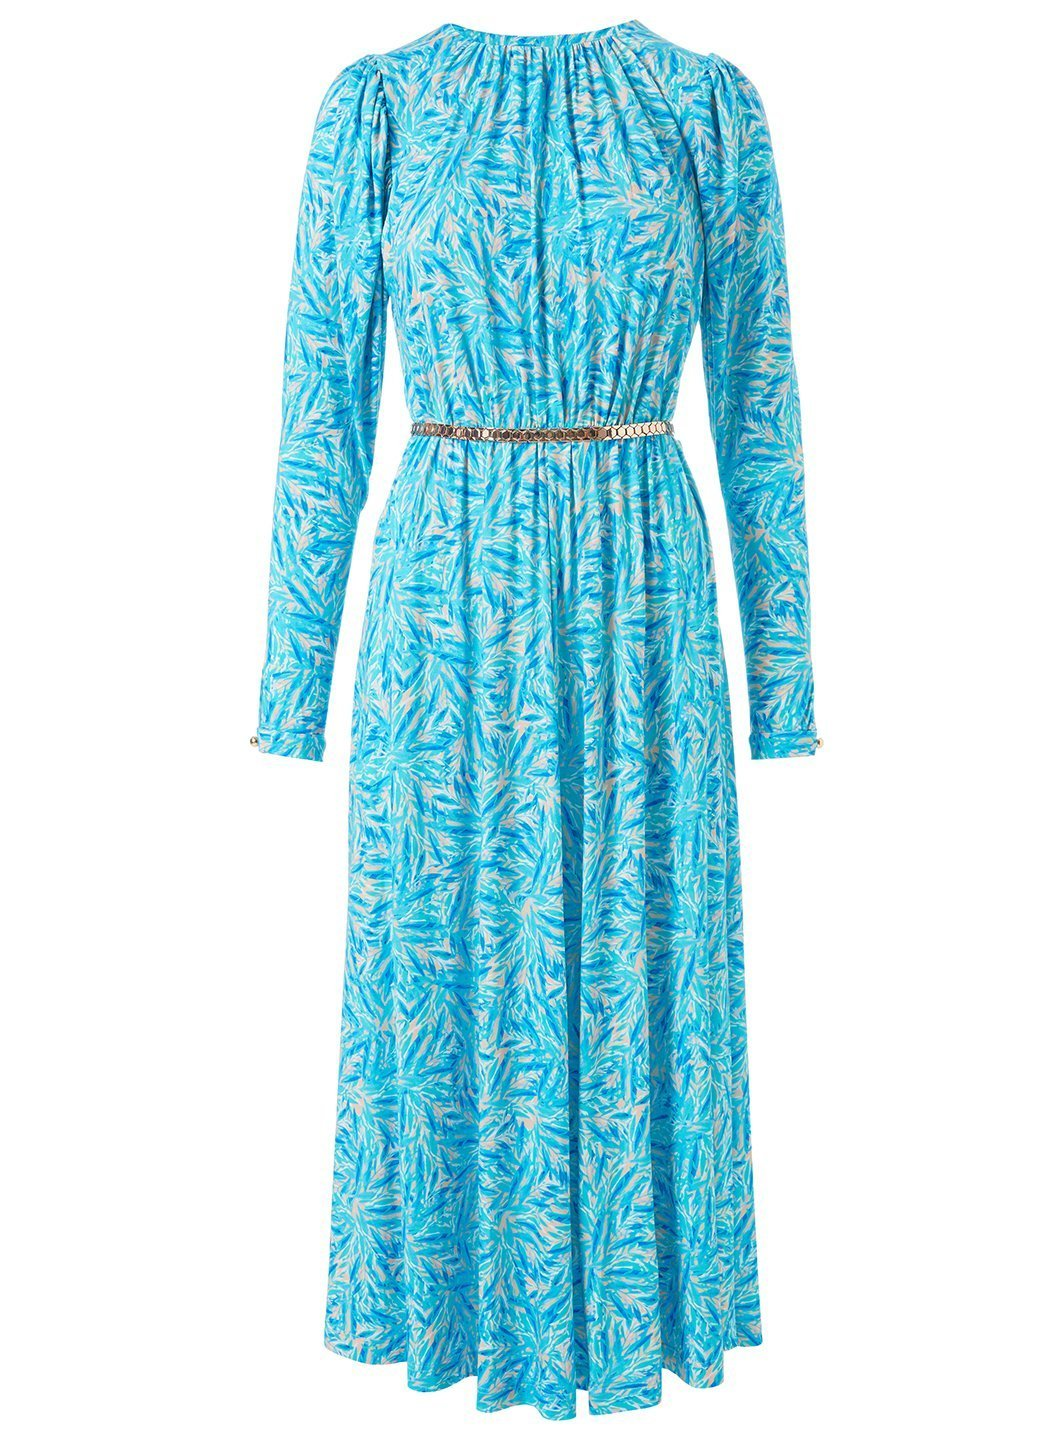 Nightingale Blue Leaf Dress Cutout